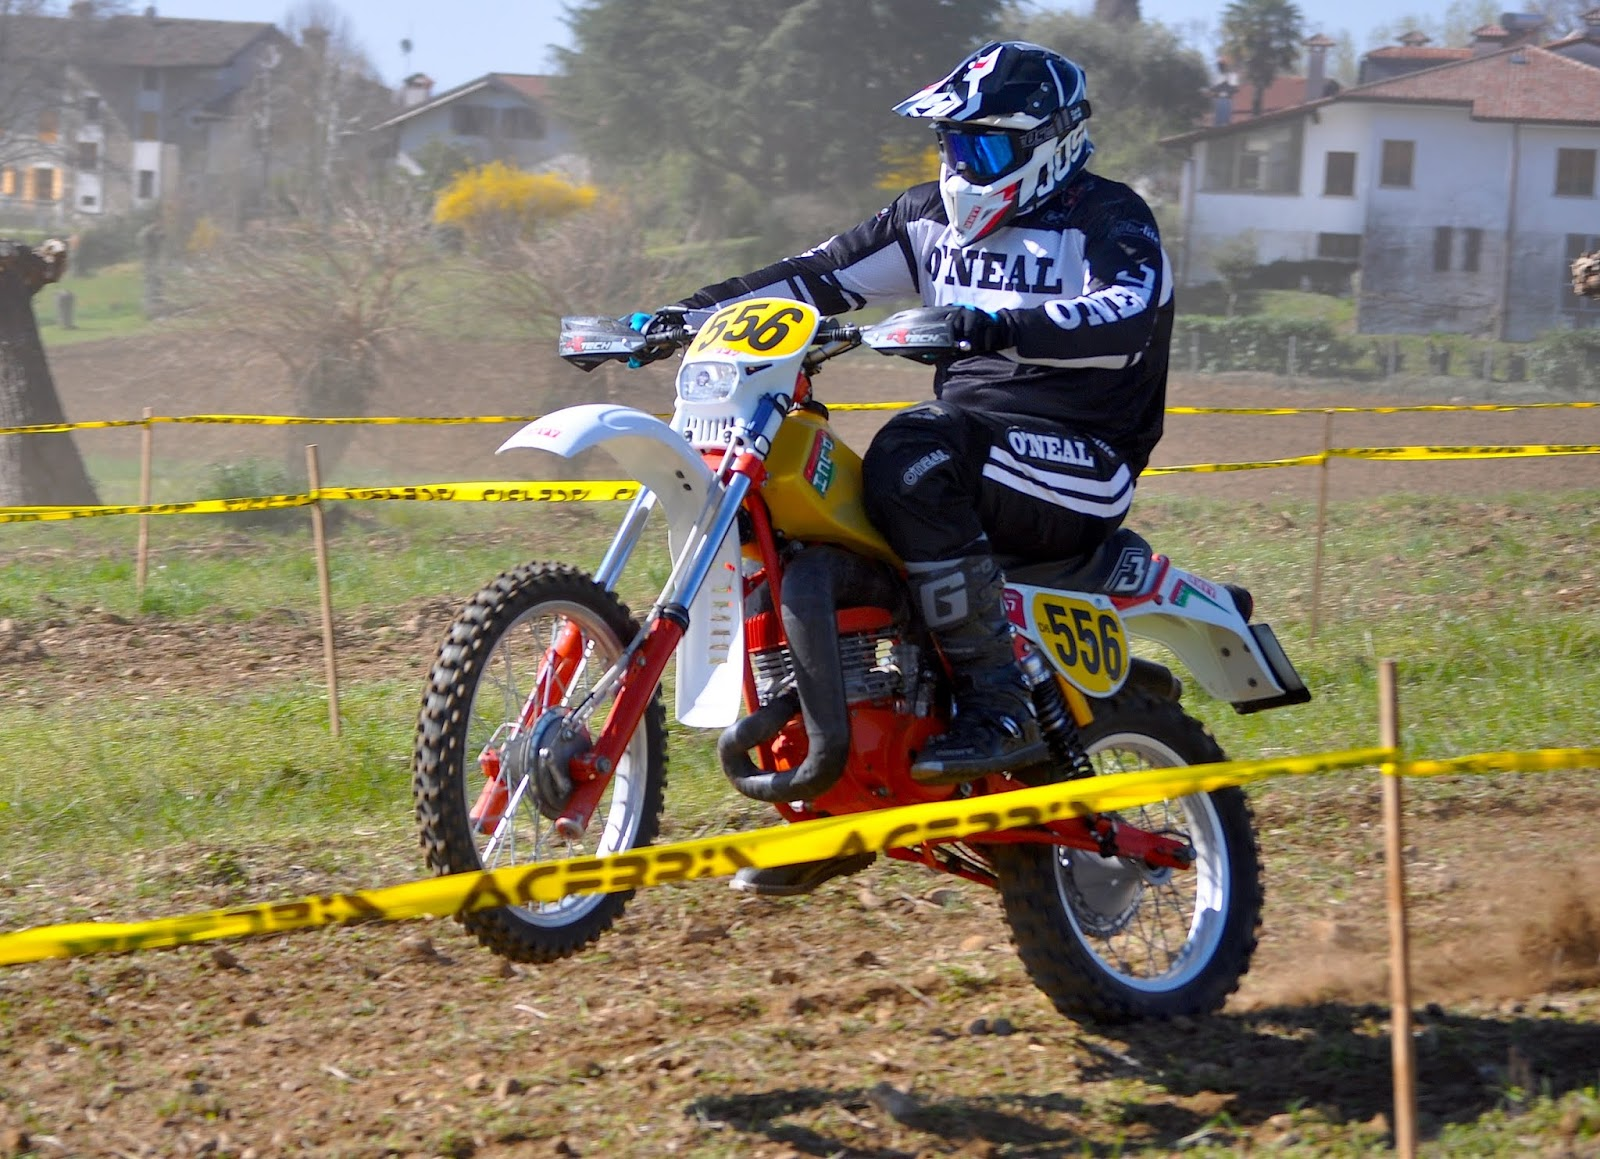 S.MARGHERITA GRUAGNO 2019 OFFROADCUP